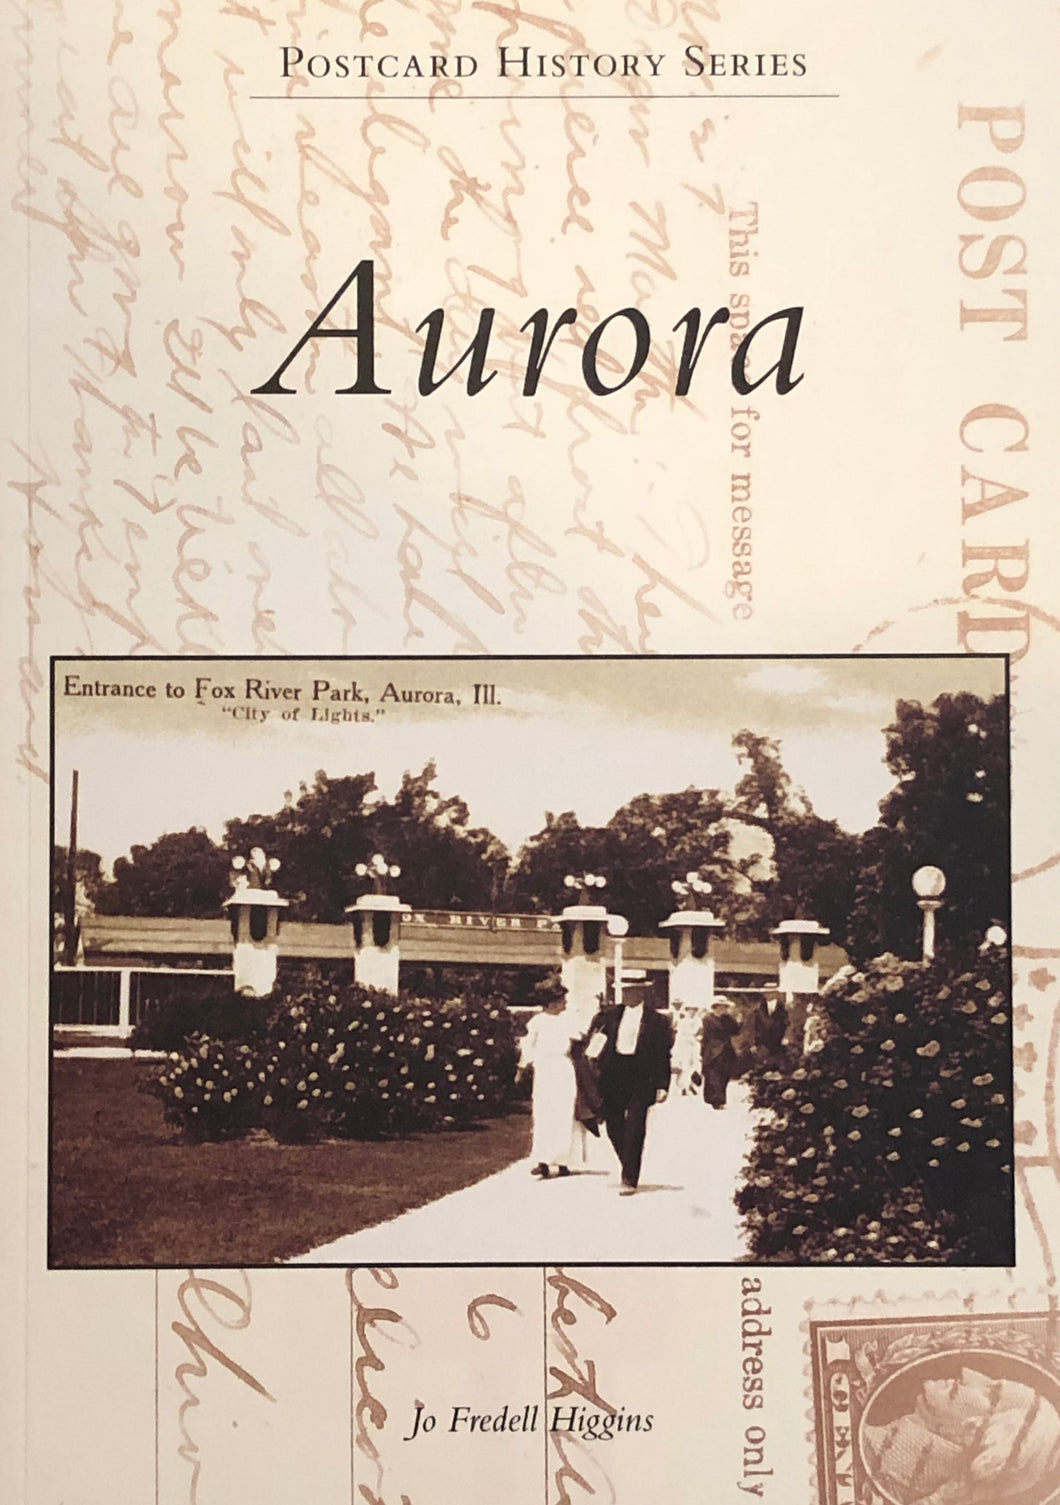 Postcard History Series: Aurora by Jo Fredell Higgins